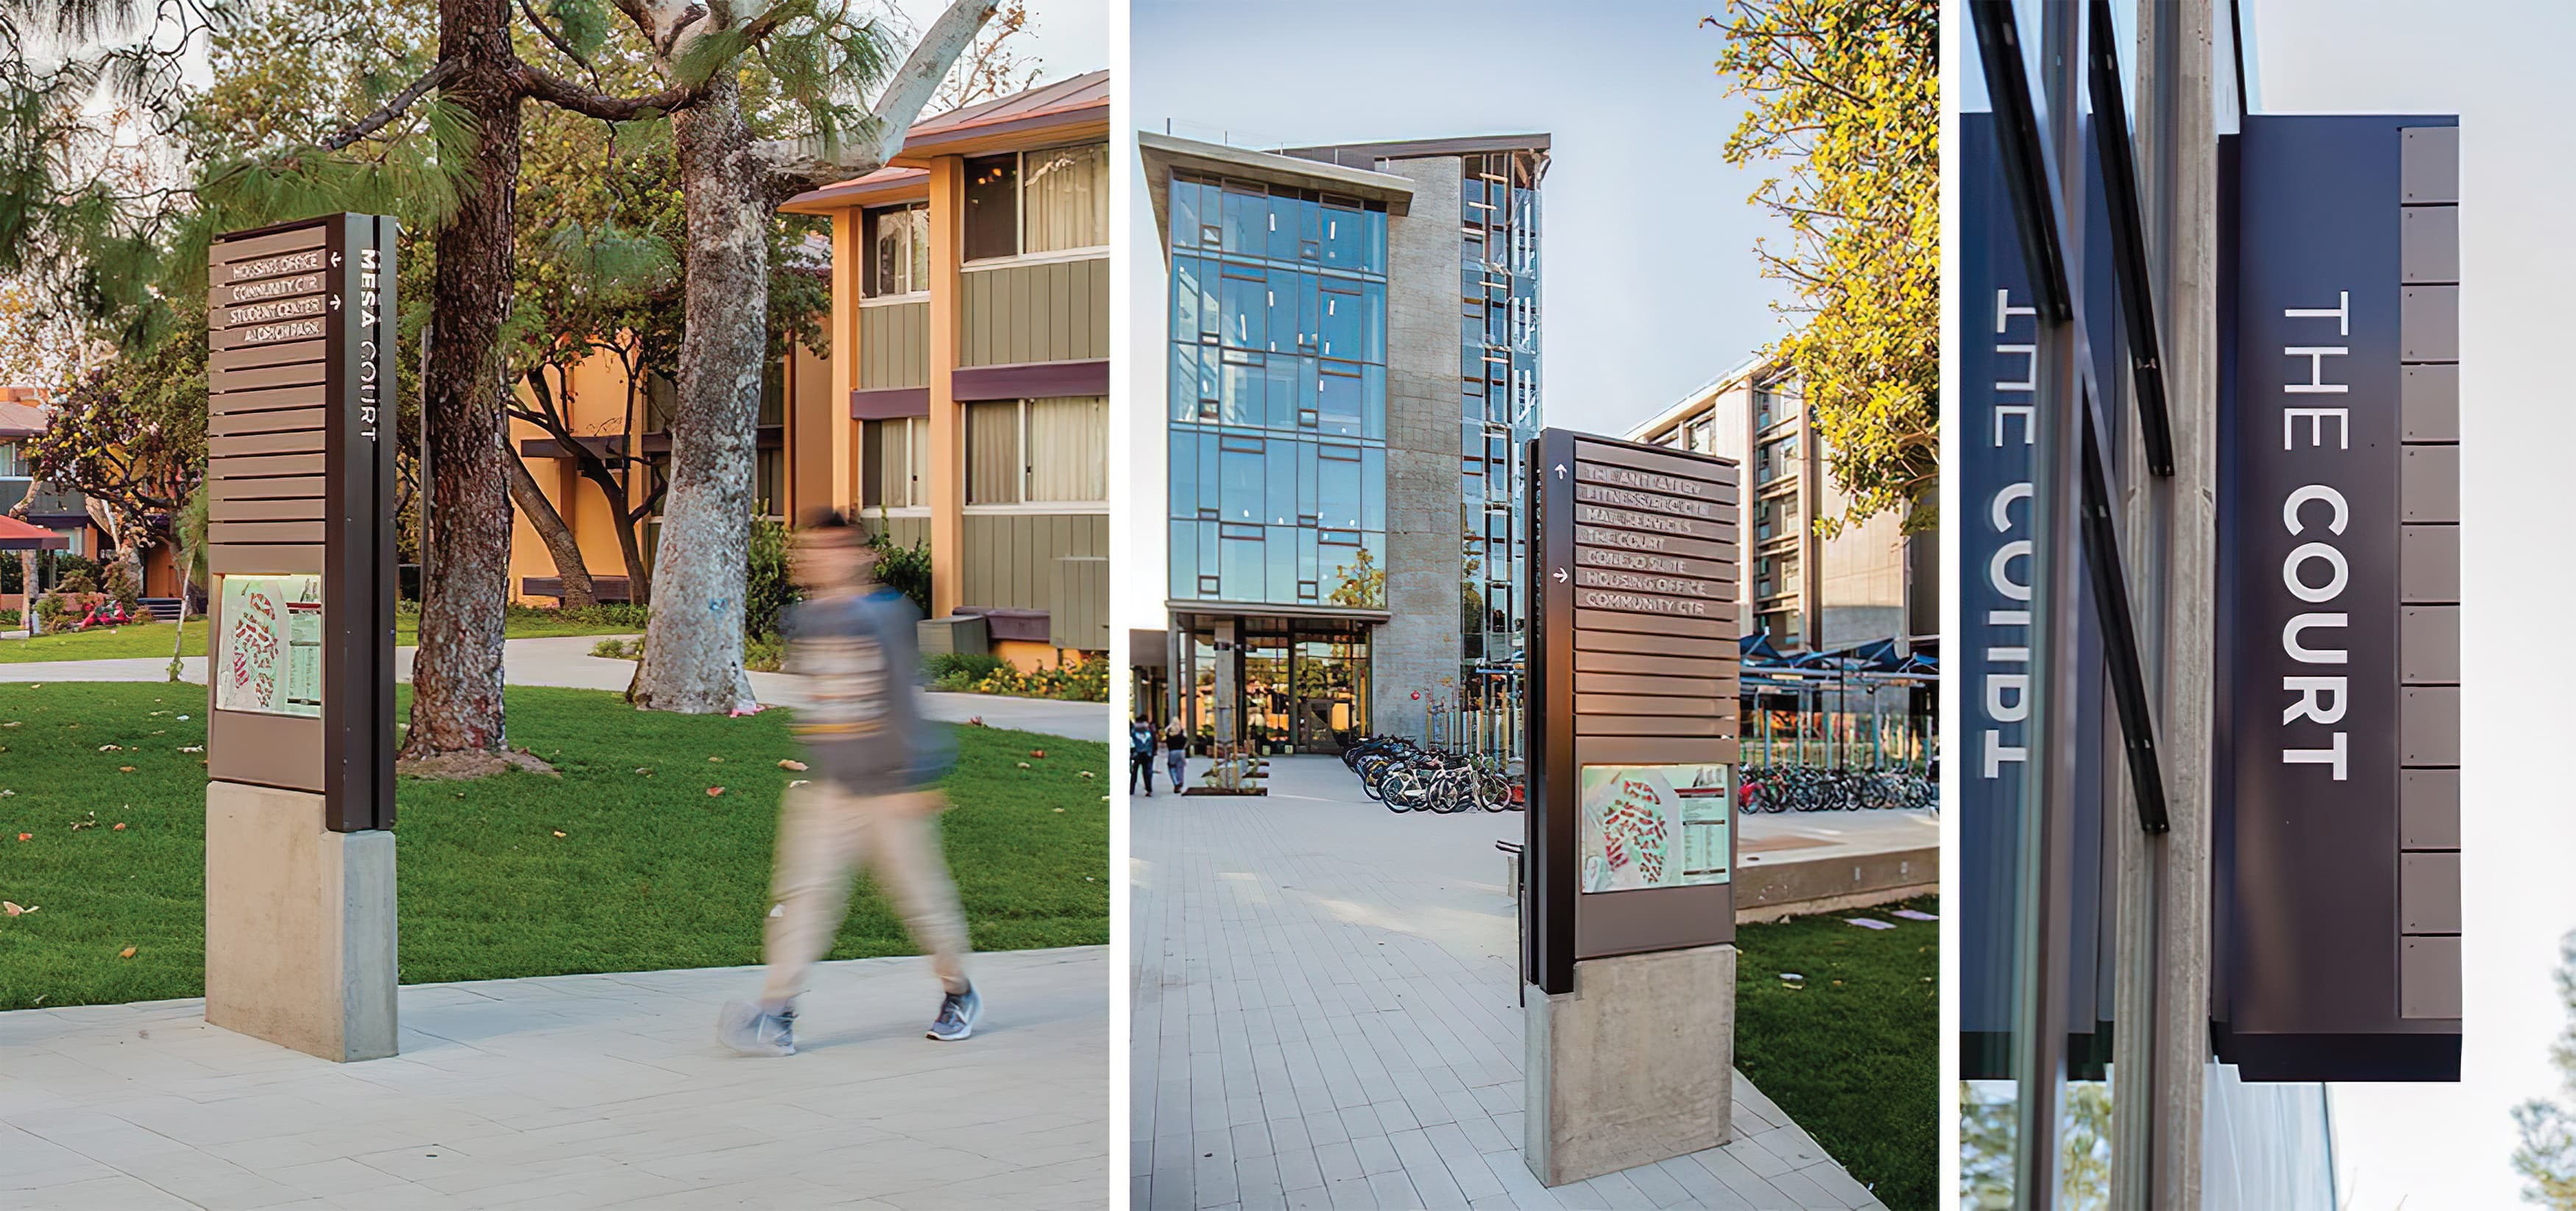 Mesa Court, located in University of California, Irvine campus. On-campus residential buildings. Freestanding Pedestrian Directional Wayfinding Design. Building Identity Blade Sign.